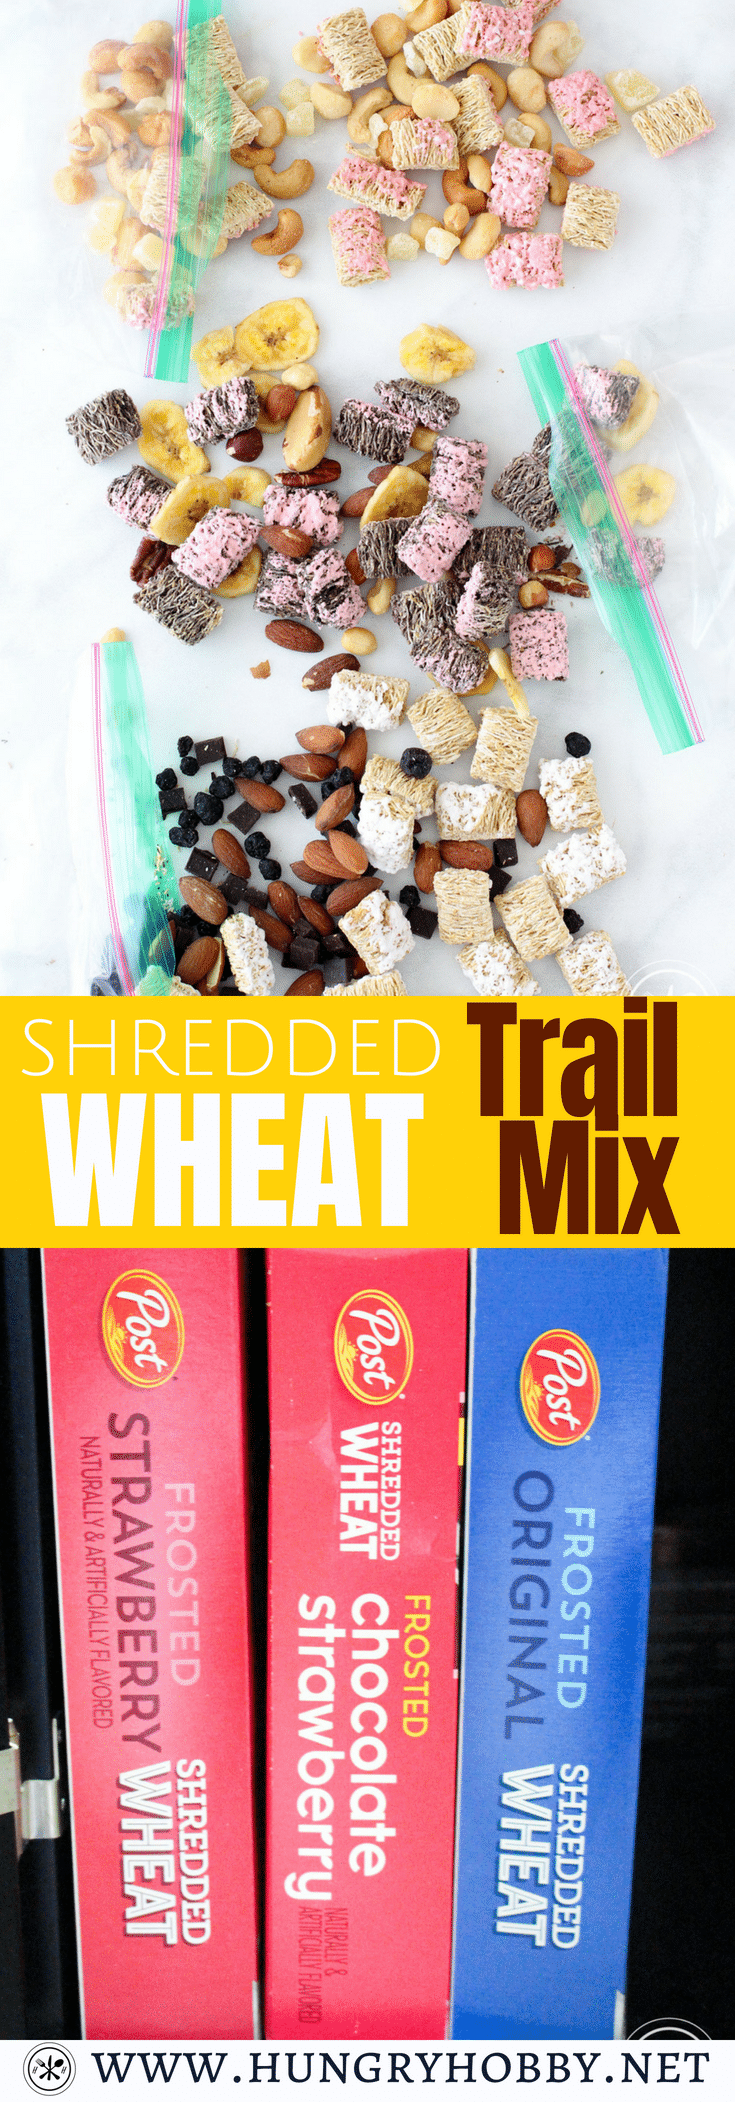 #AD Wholesome frosted wheat biscuit flavors including original, strawberry, and chocolate strawberry turn into easy and delicious portable snacking!  #SummertimeTasty #sponsored @postshredded @hboats @walmart#snacking #healthy #trailmix #easyrecipe #easysnacks #healthysnacks #healthy